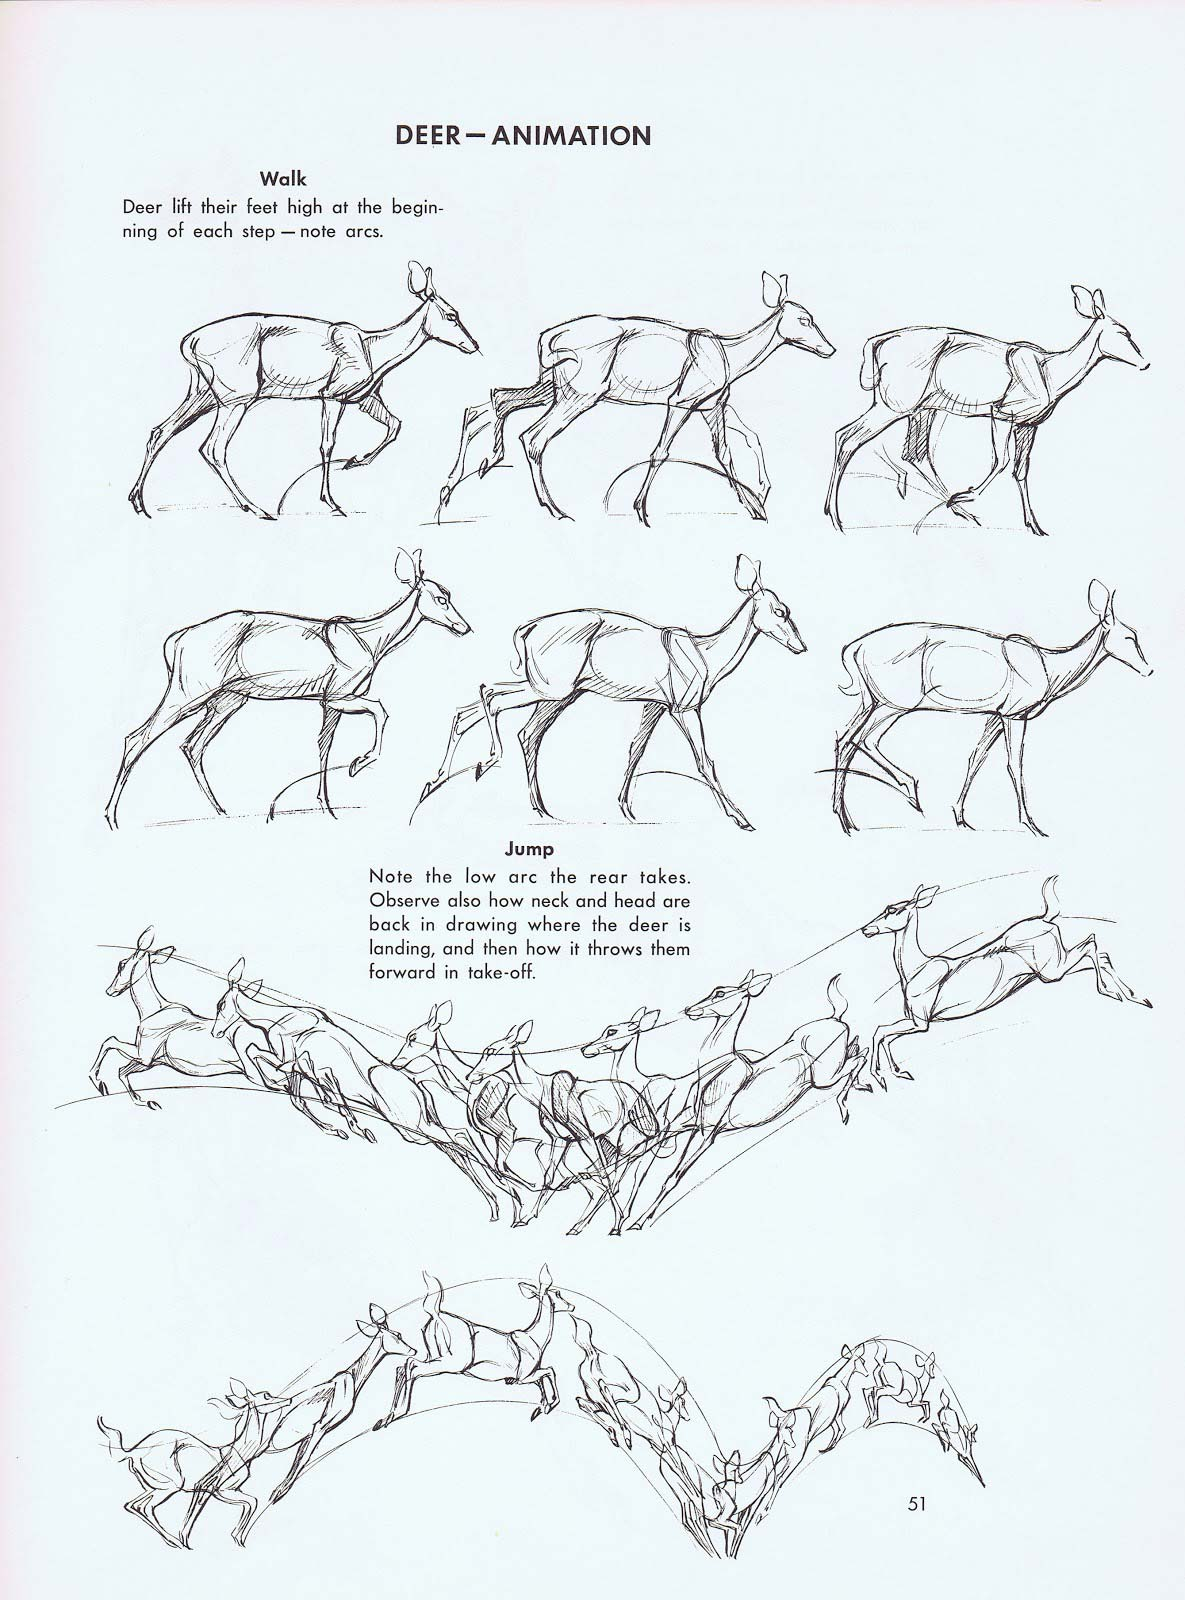 Deer jumping drawing reference